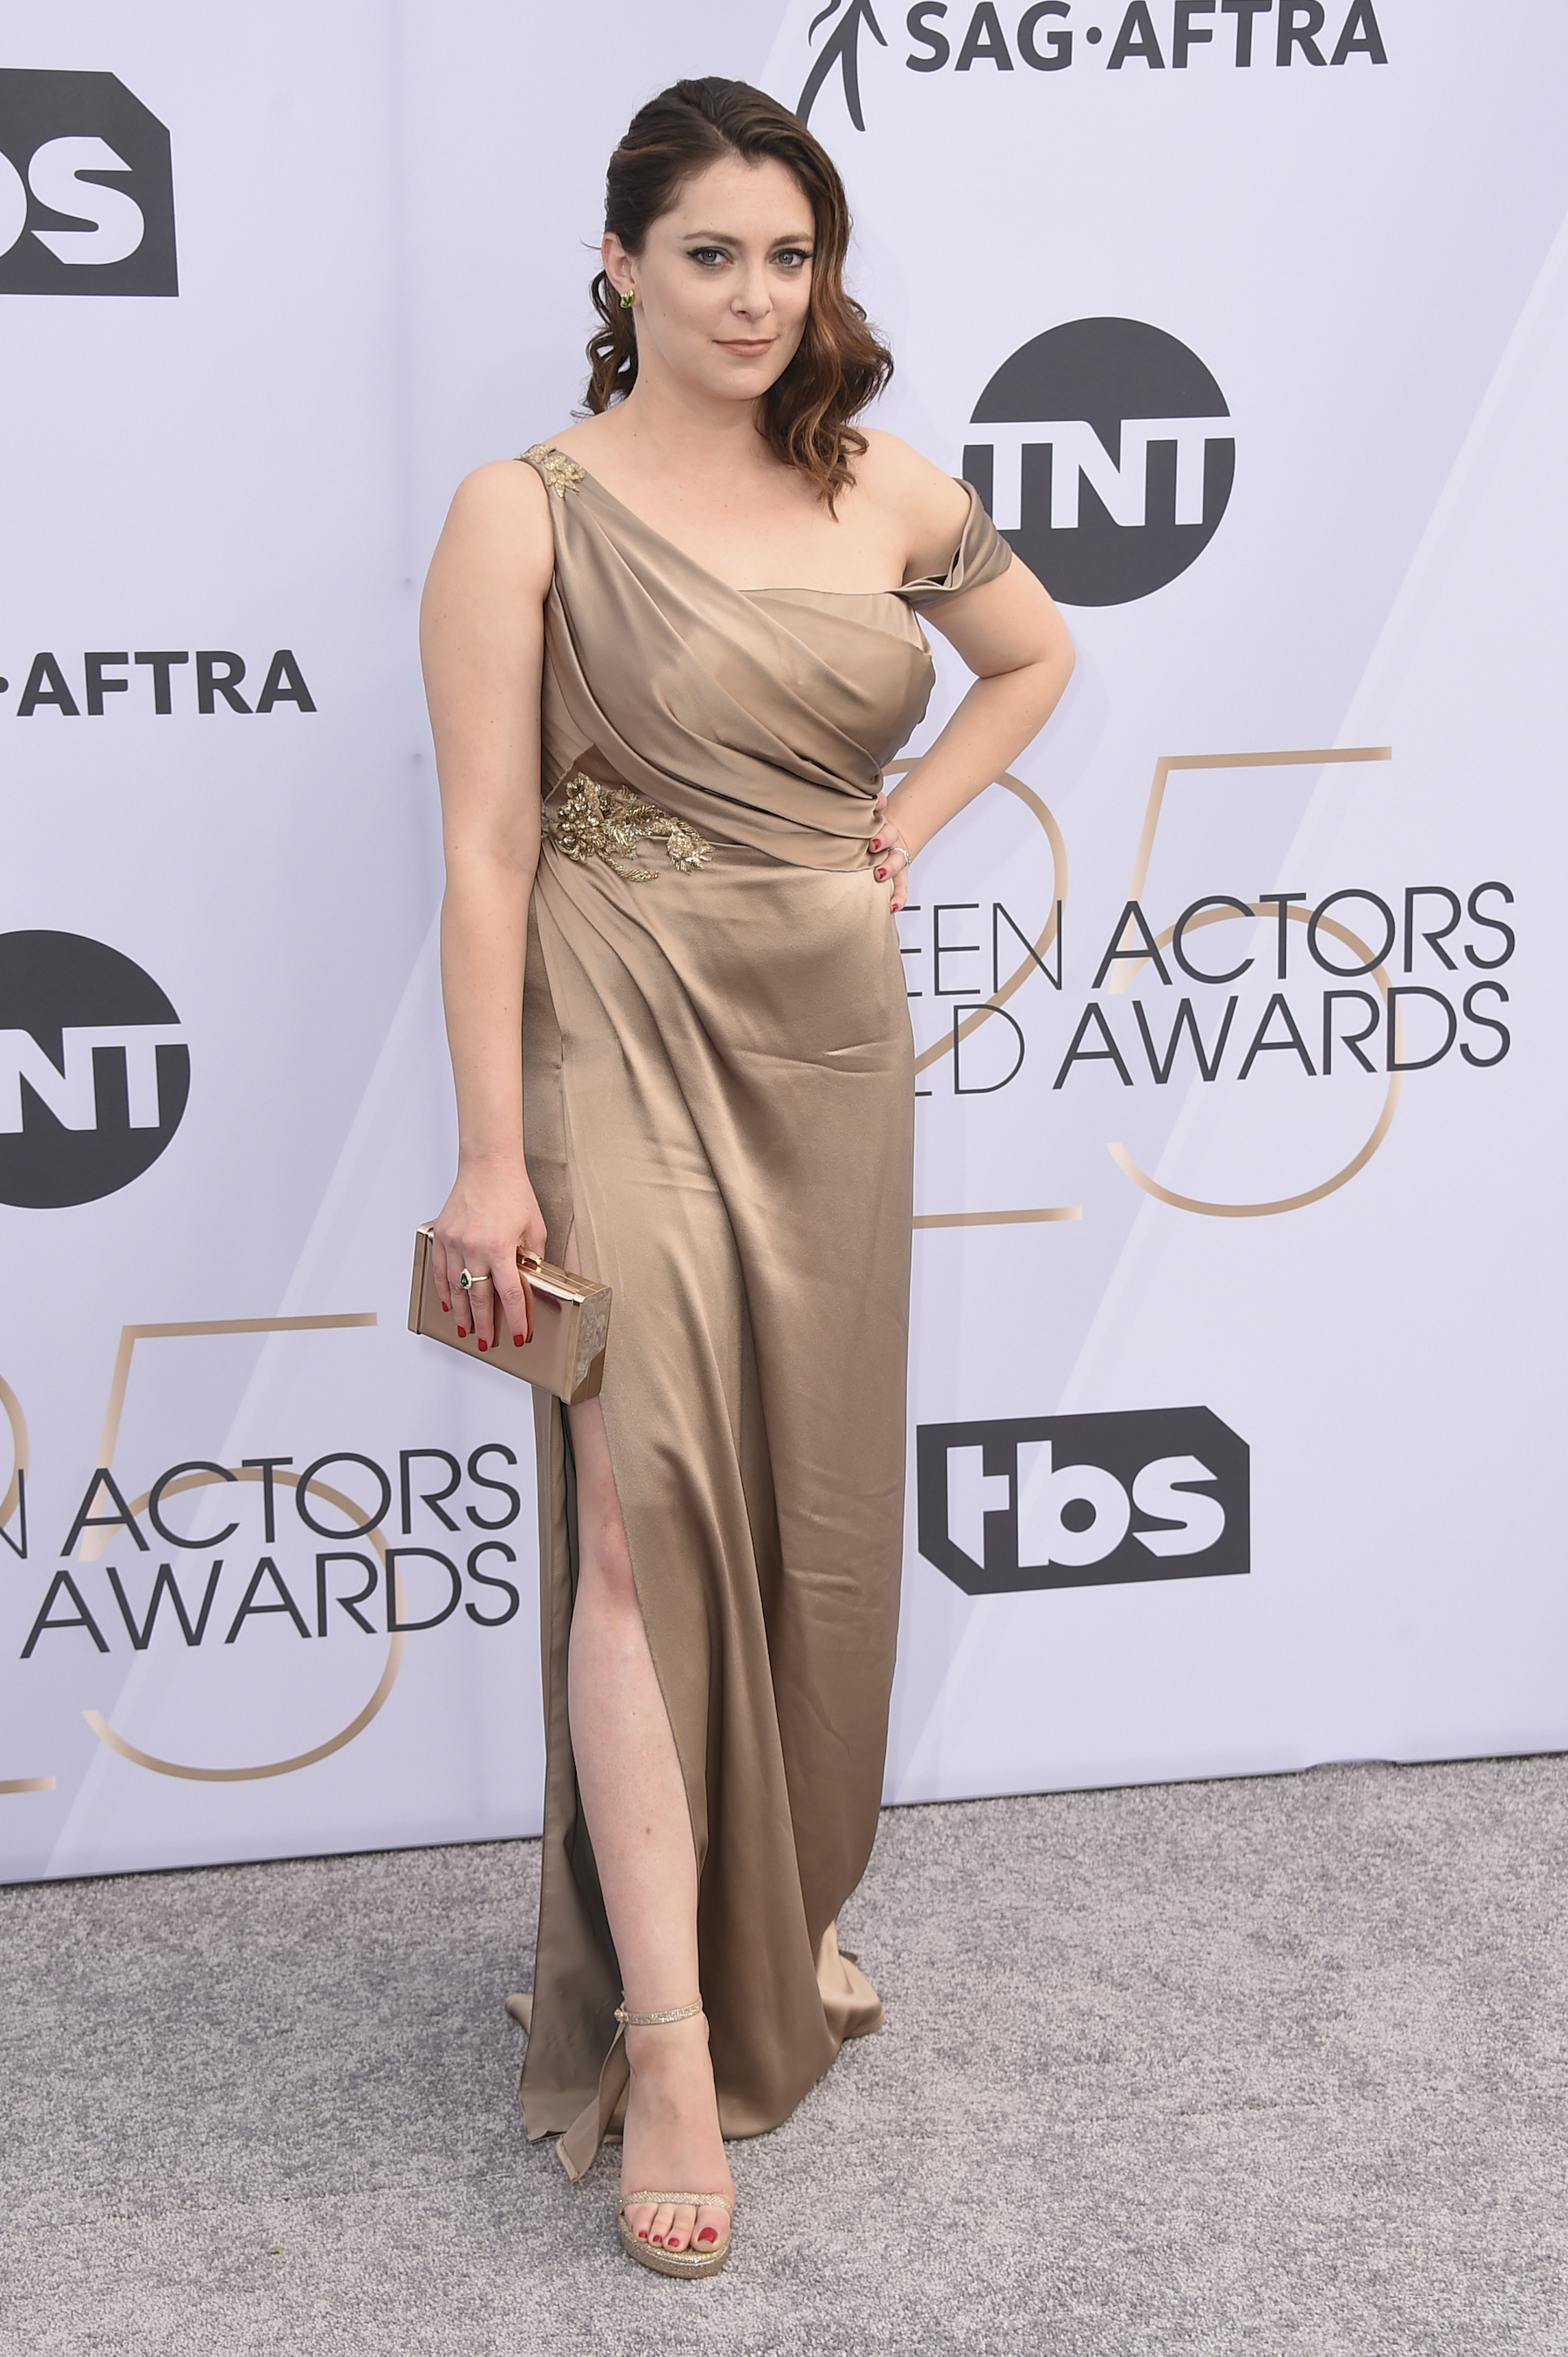 "<div class=""meta image-caption""><div class=""origin-logo origin-image ap""><span>AP</span></div><span class=""caption-text"">Rachel Bloom arrives at the 25th annual Screen Actors Guild Awards at the Shrine Auditorium & Expo Hall on Sunday, Jan. 27, 2019, in Los Angeles. (Jordan Strauss/Invision/AP)</span></div>"